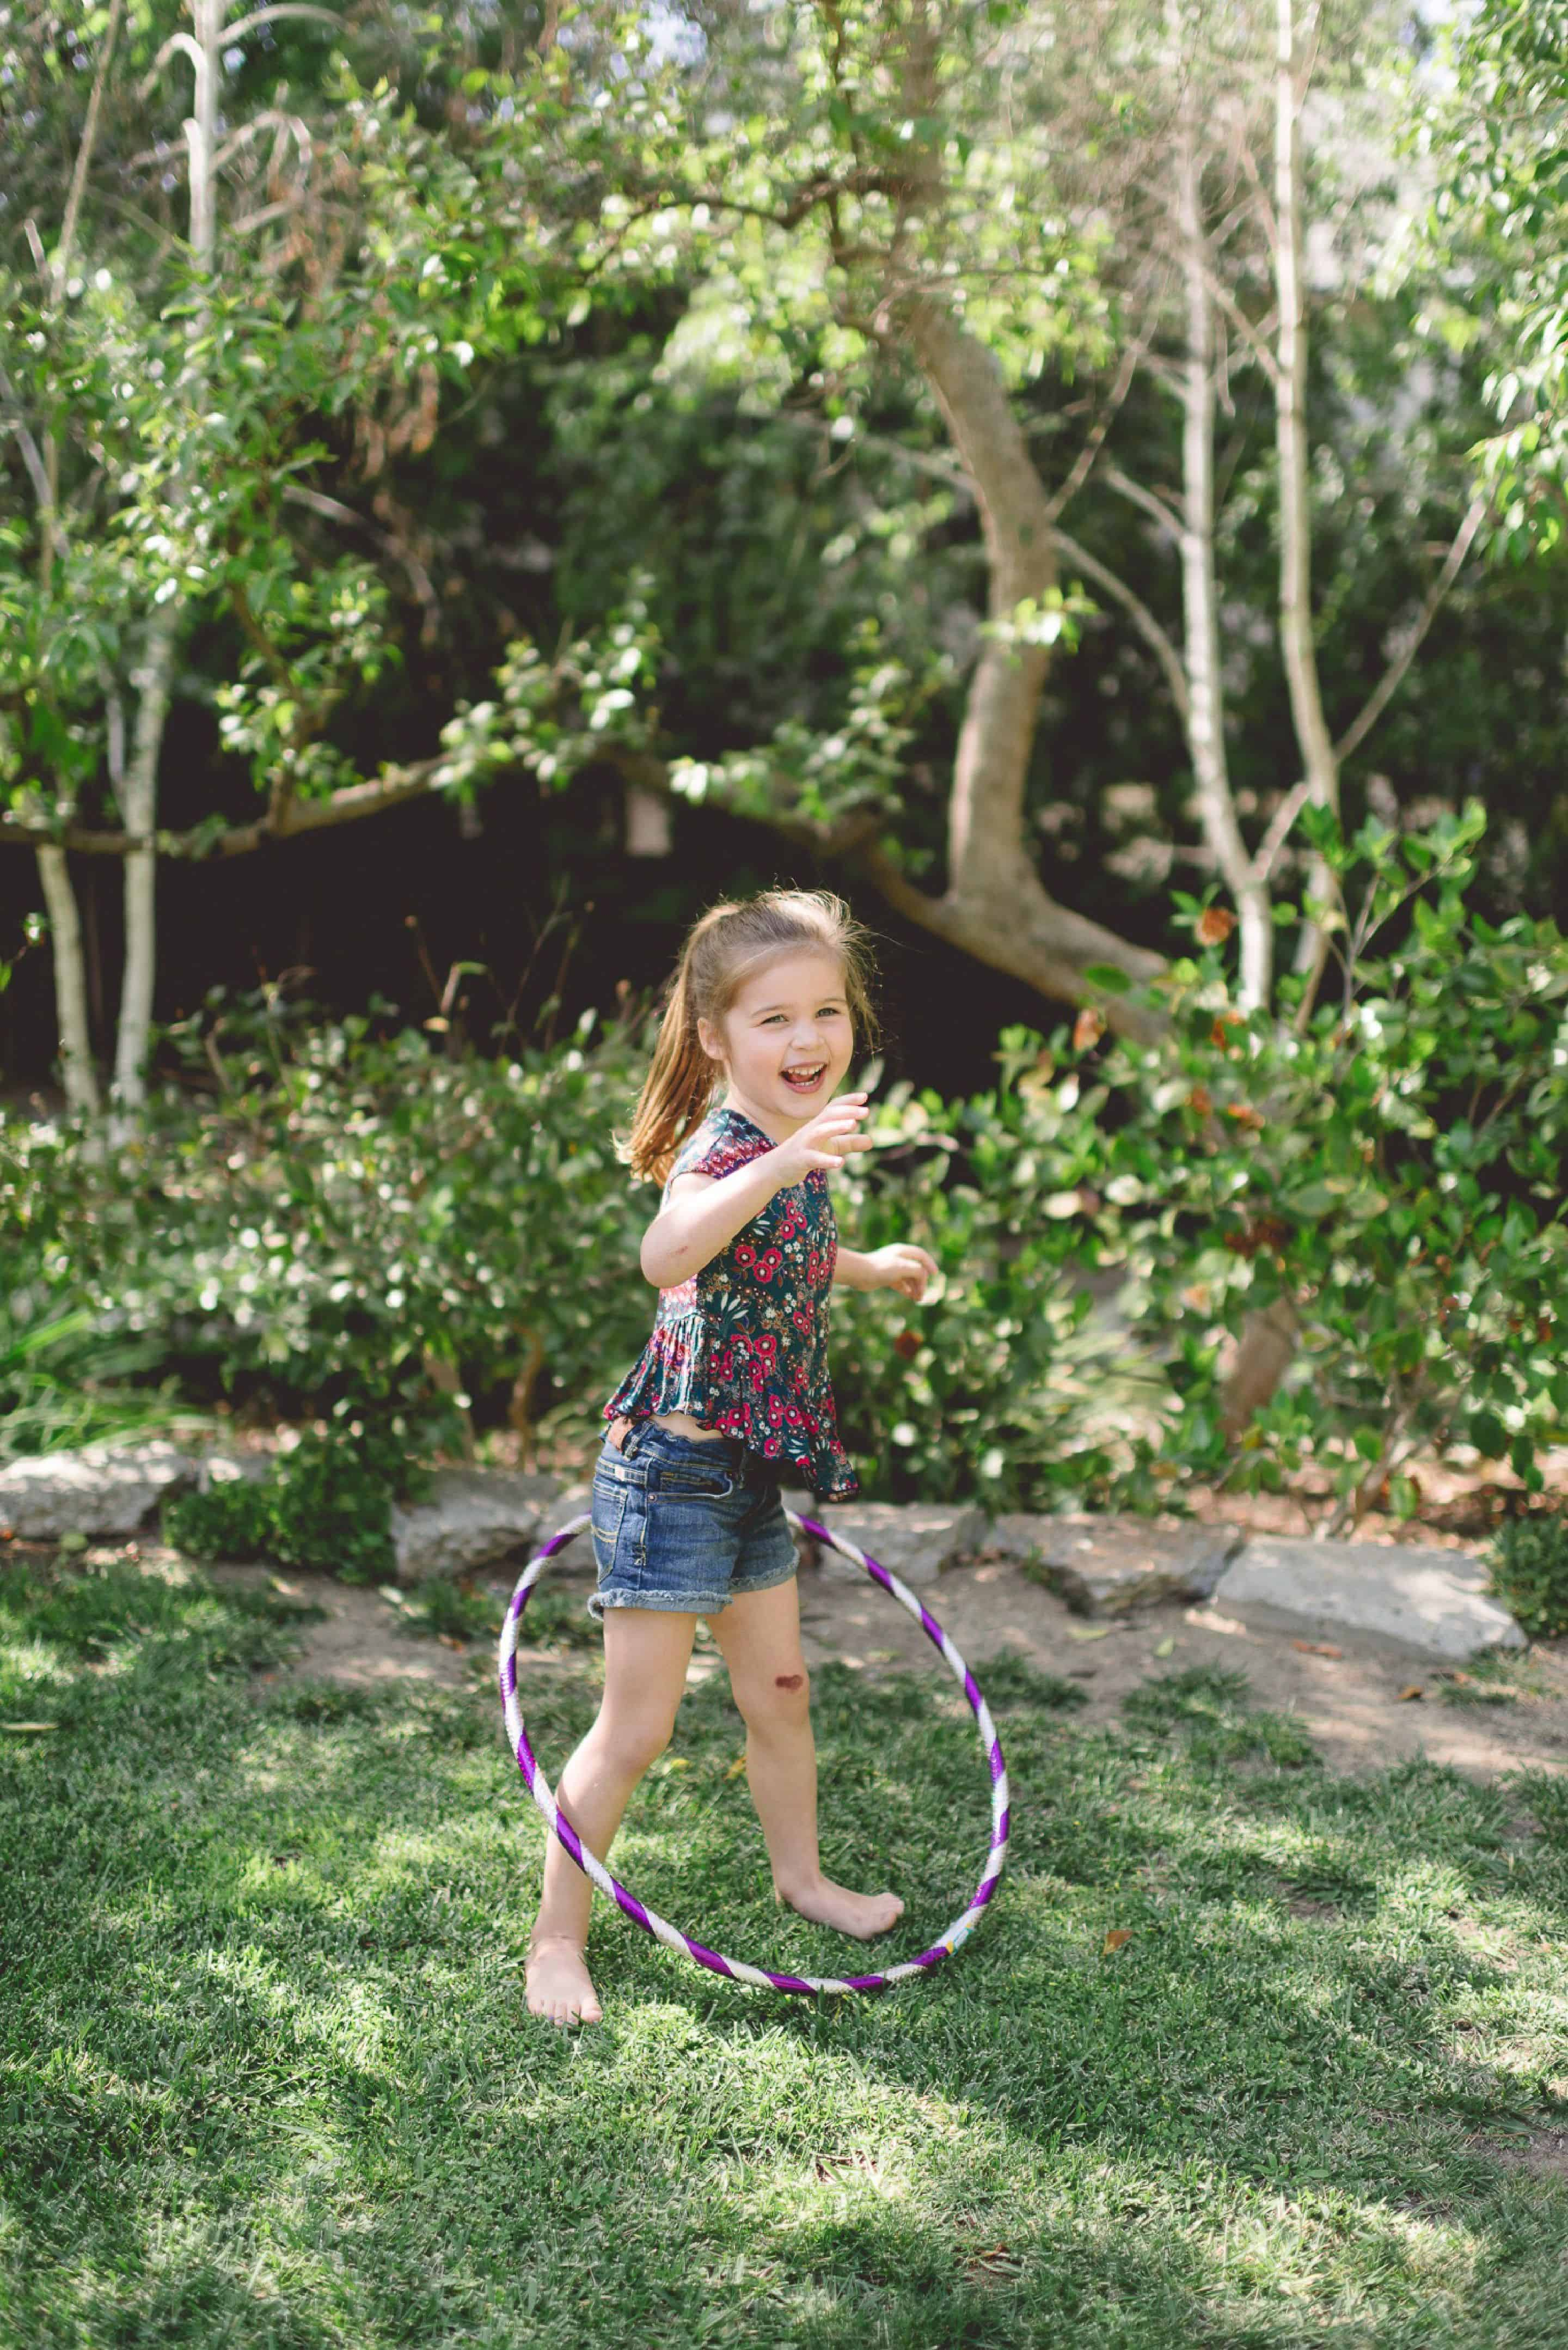 Harper's Hula Hoopla by Tiffani Thiessen • Photography by Rebecca Sanabria